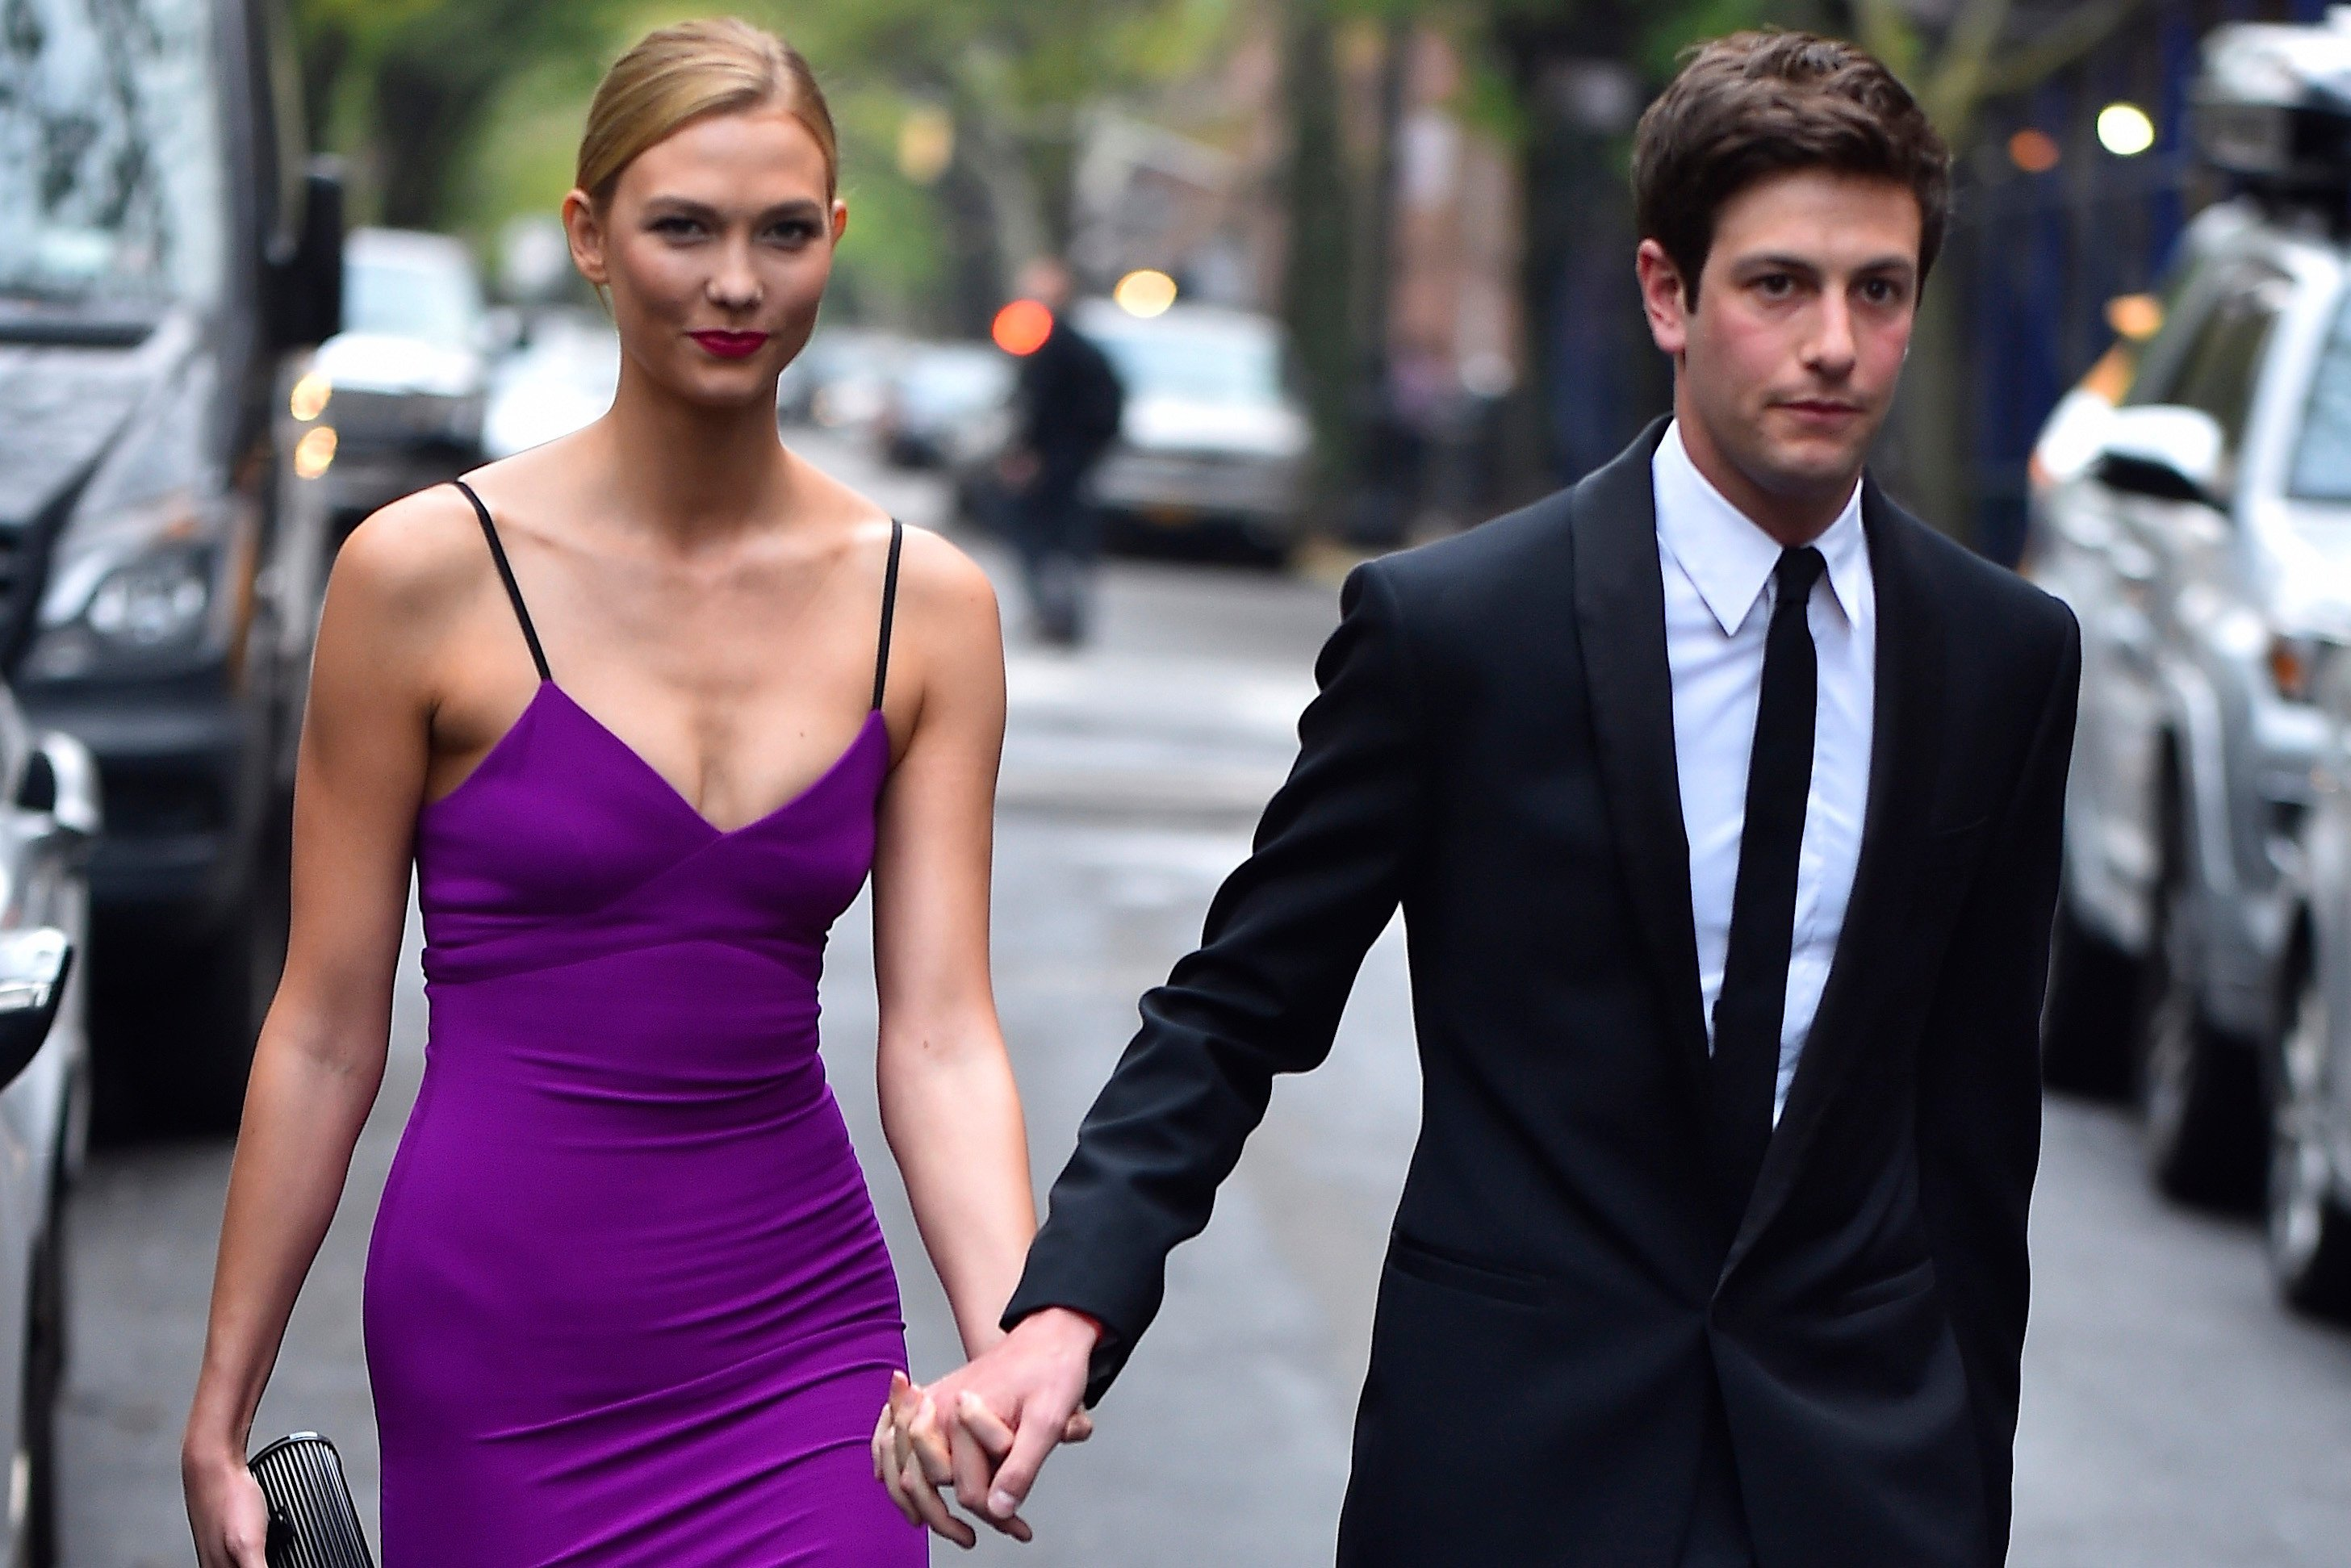 Karlie Kloss 'clearly knows her stuff' after converting to Judaism